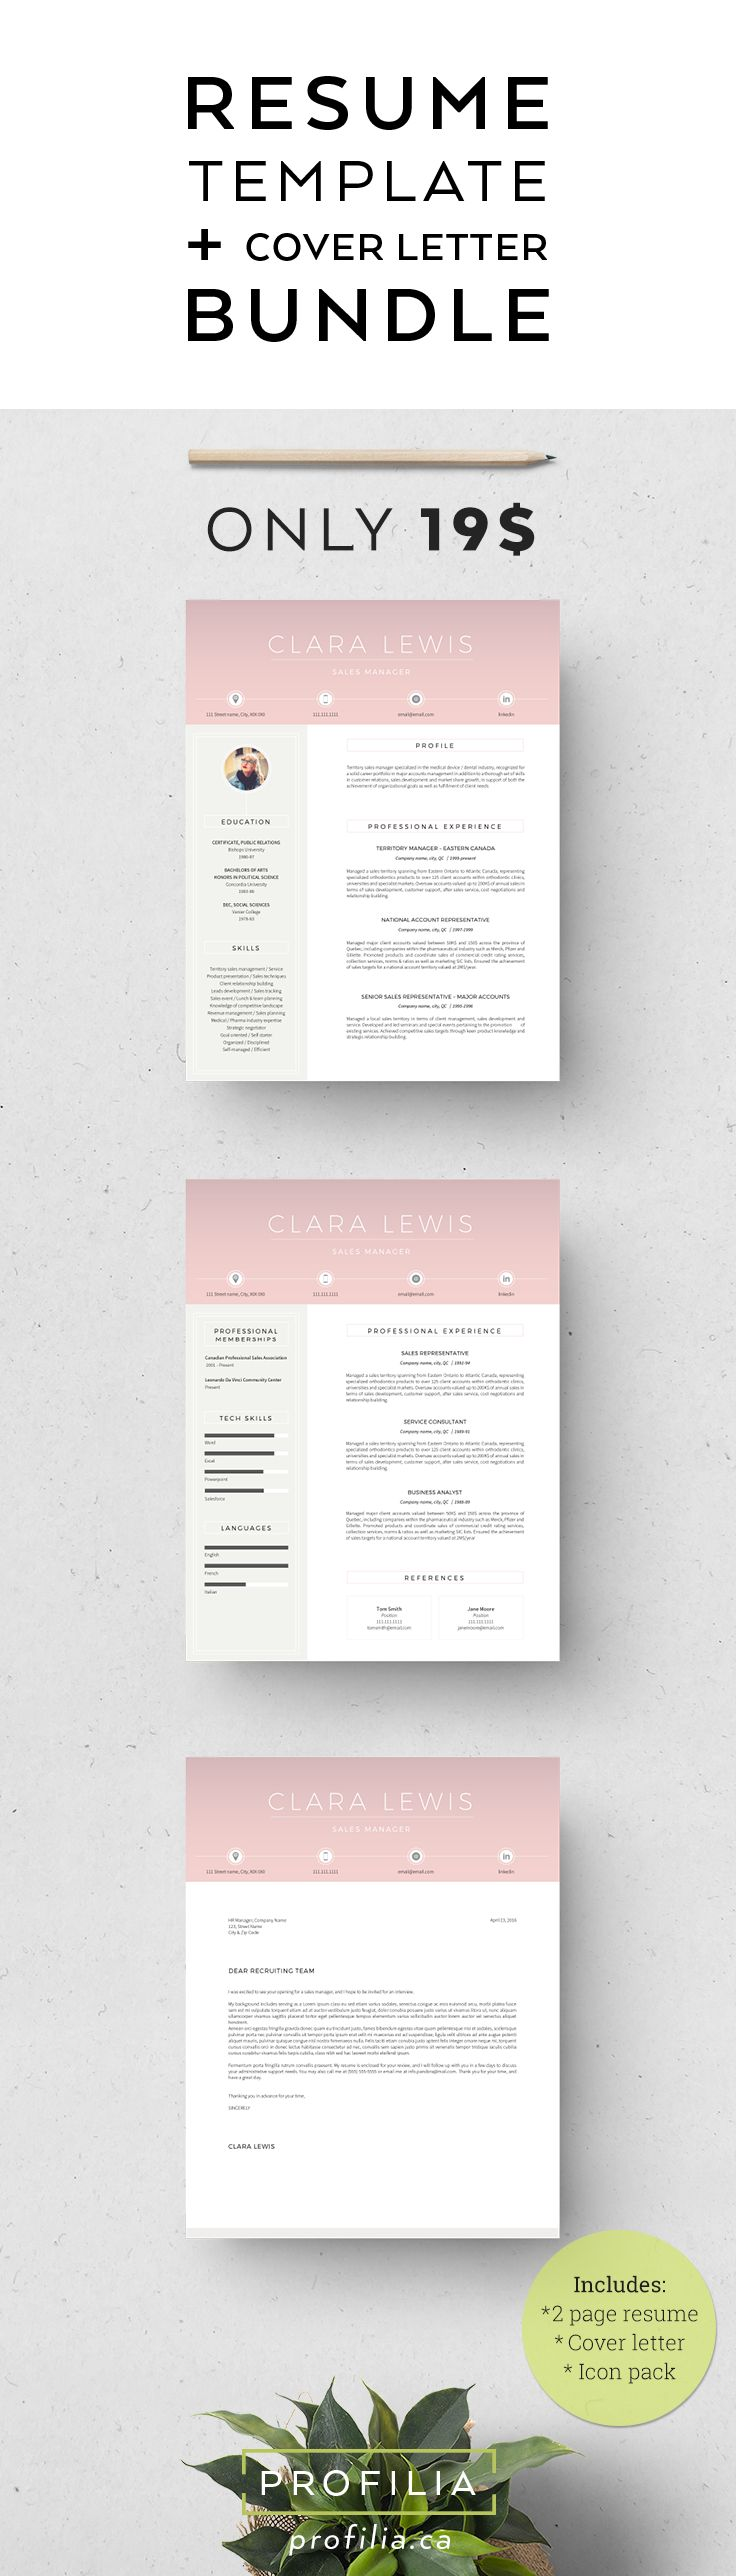 best ideas about resume cover letter template modern resume cover letter template editable word format